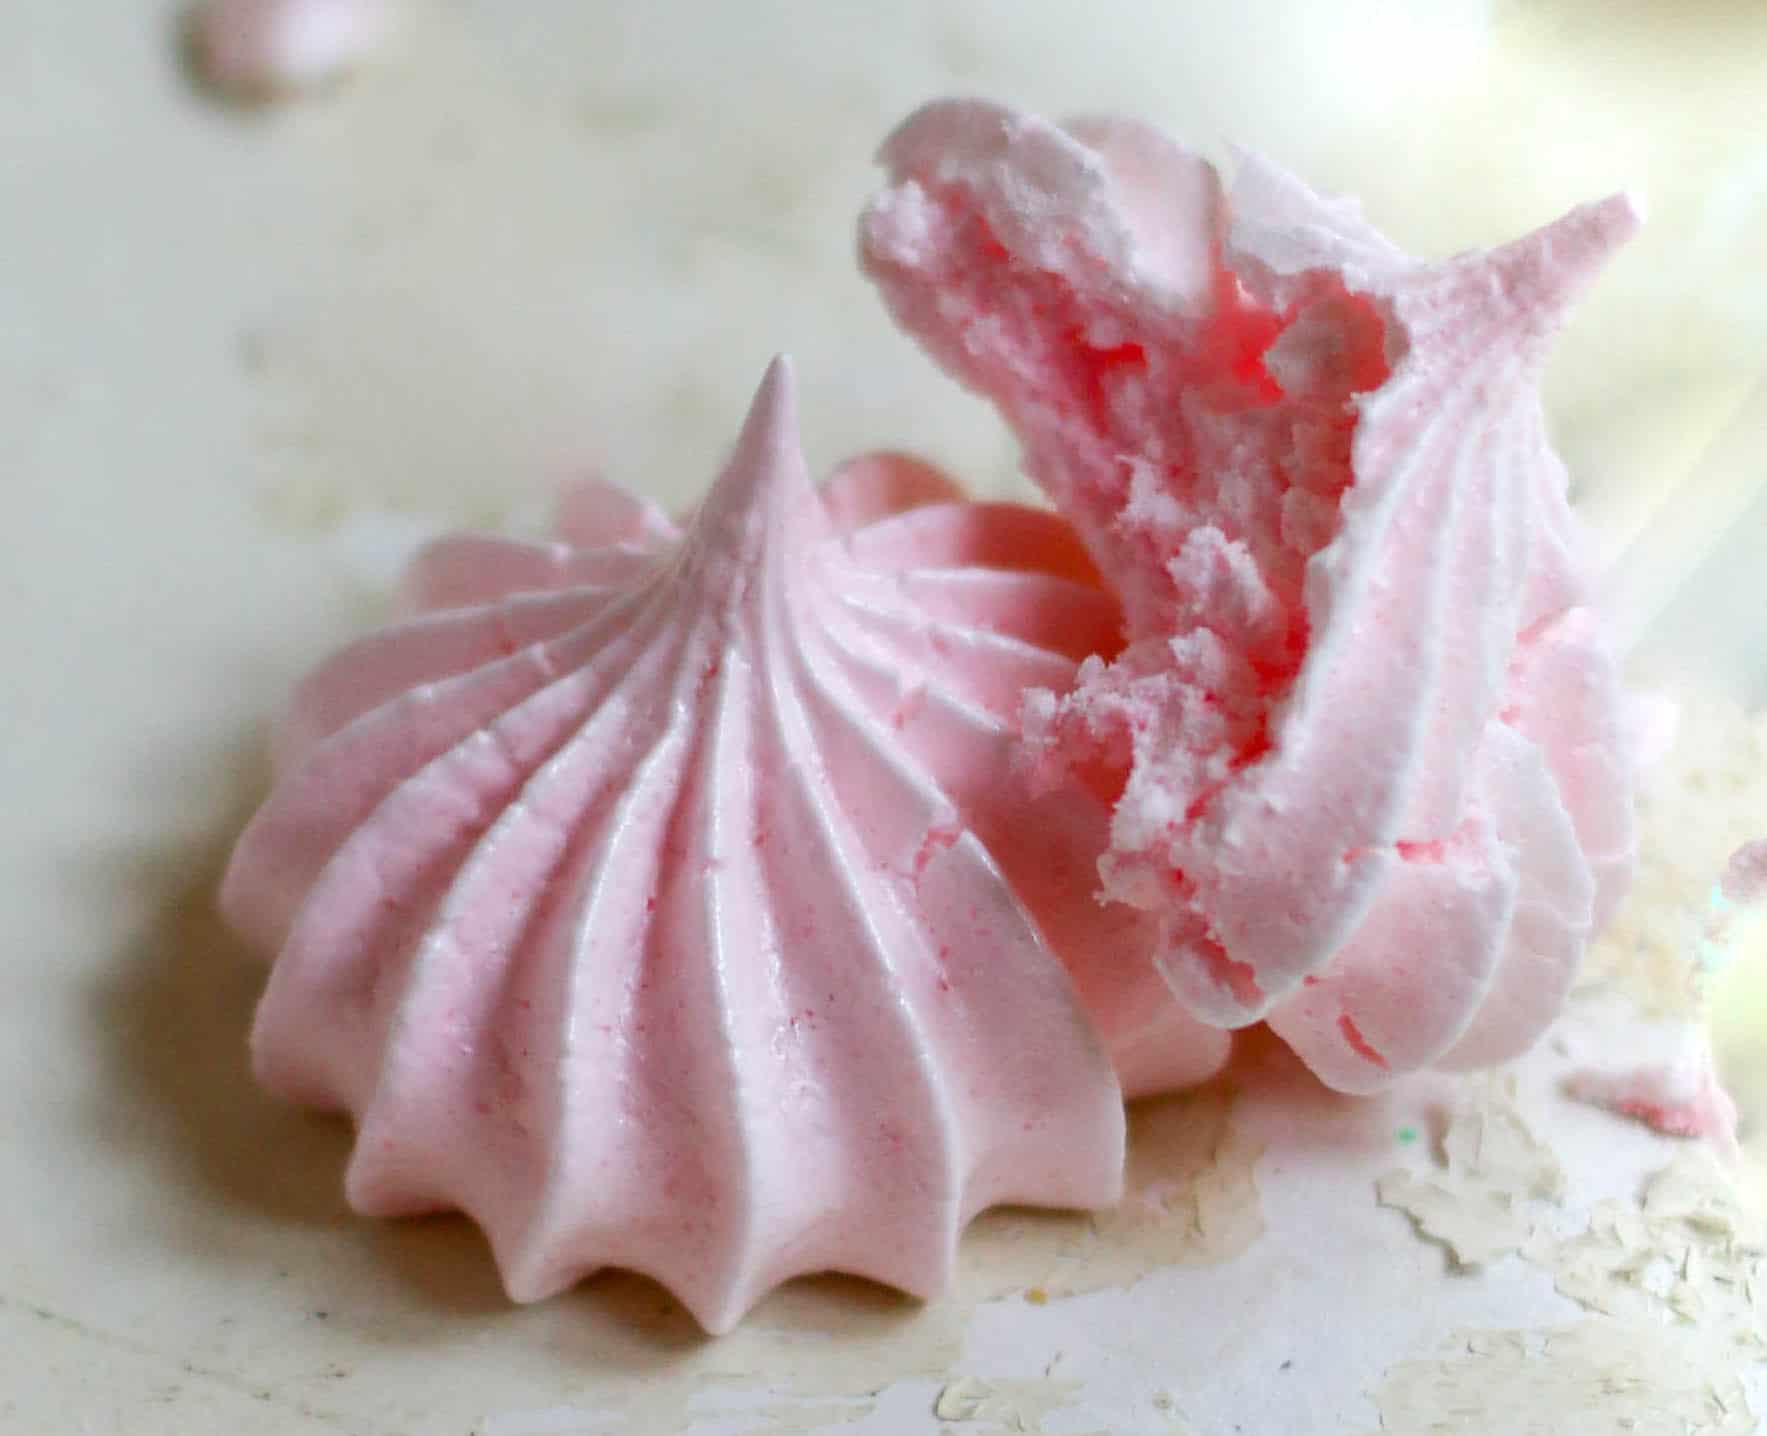 two peppermint meringues, with one having a bite taken out of it